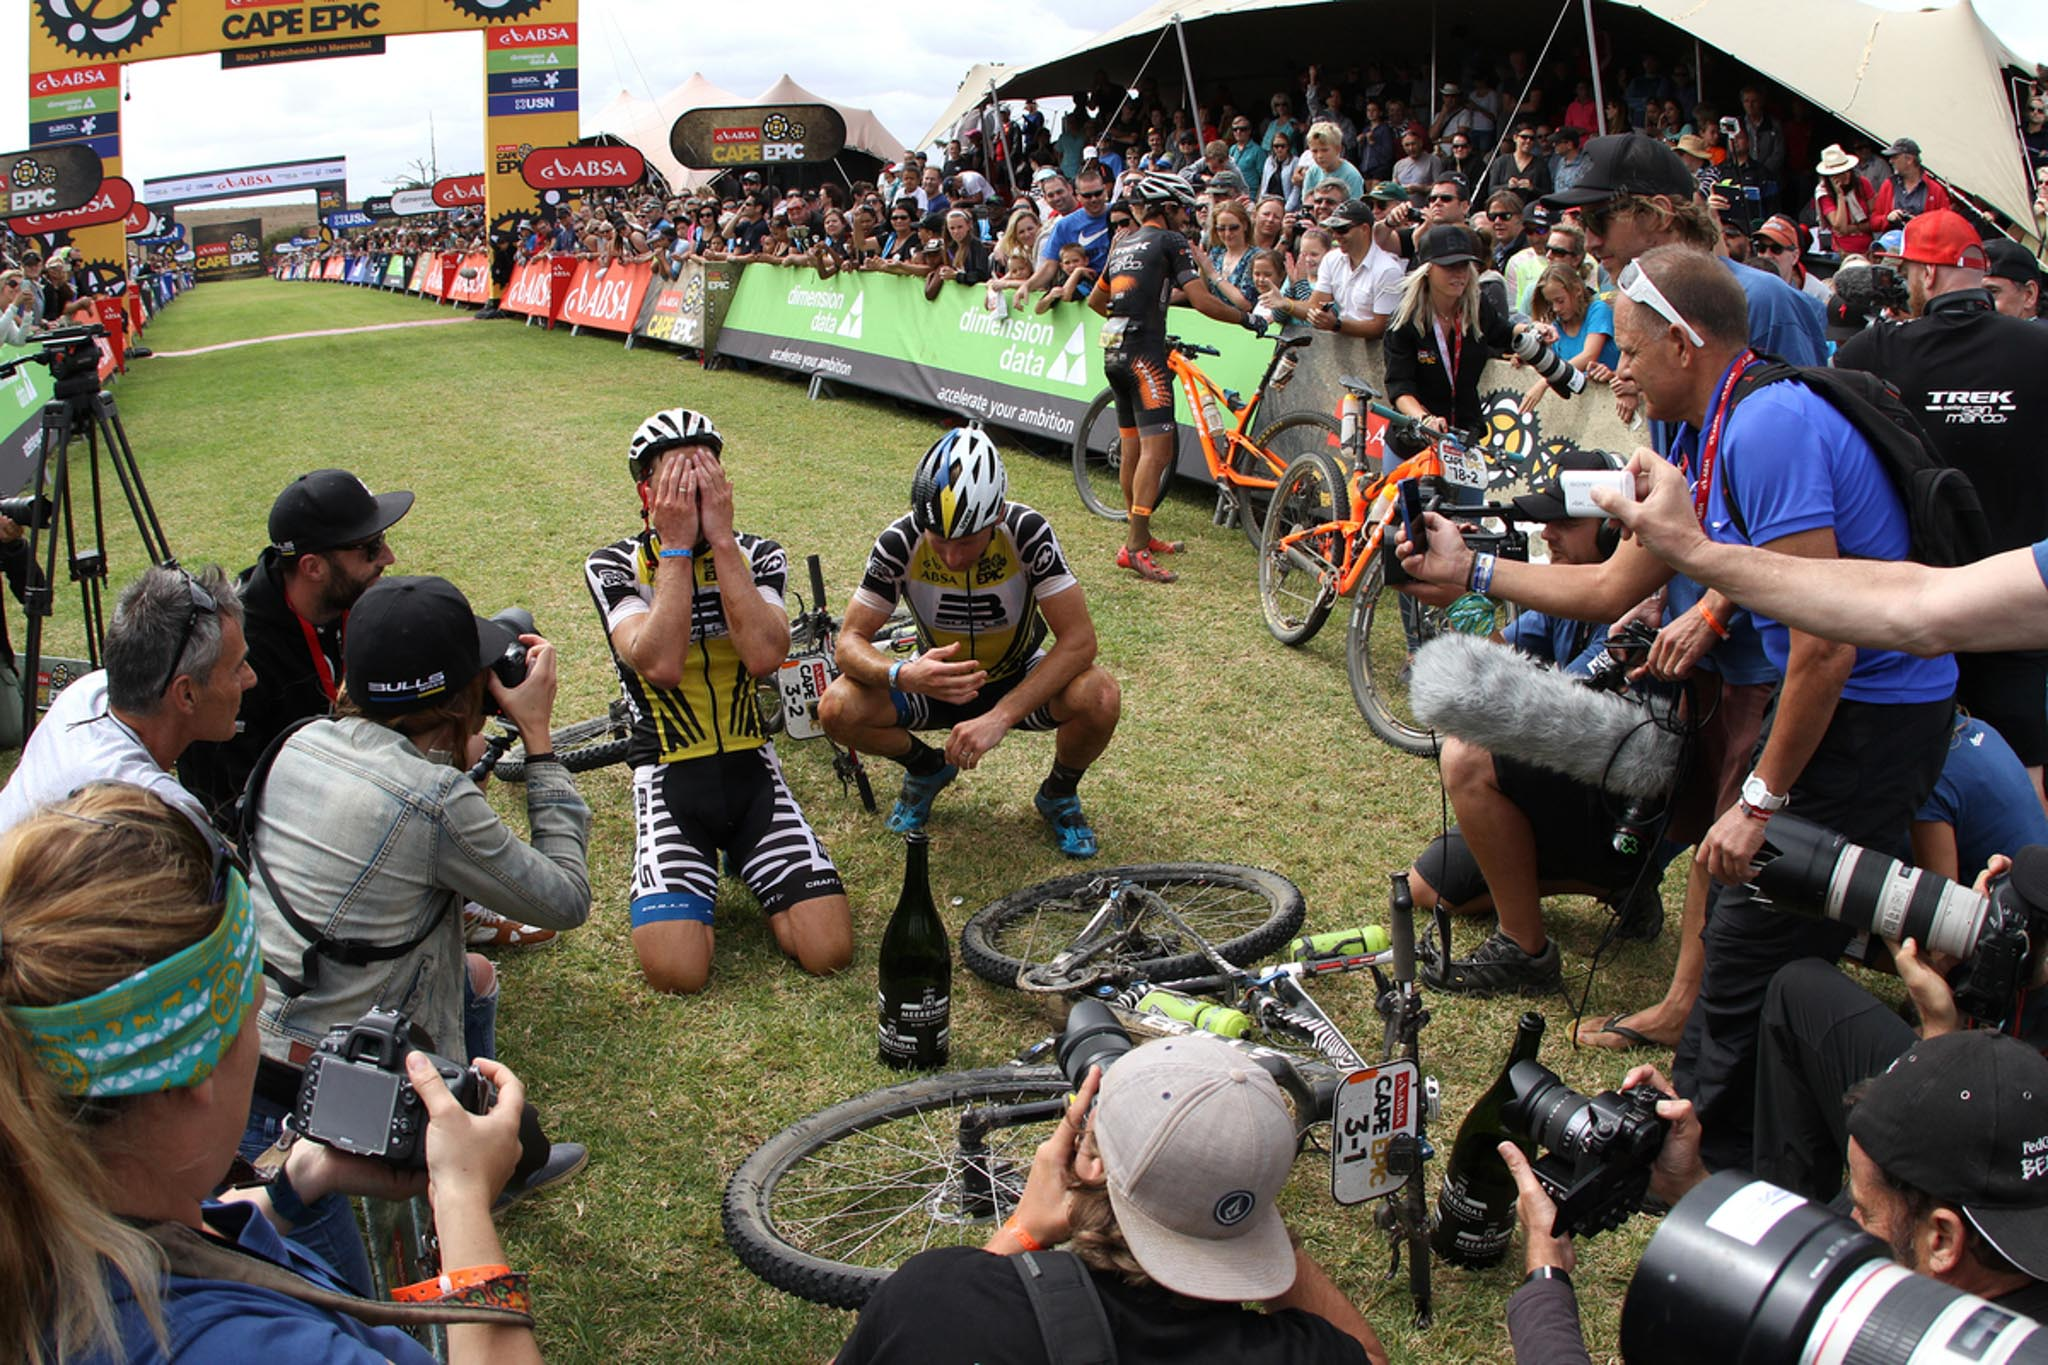 Karl Platt and Urs Huber of the Bulls after winning the 2016 Absa Cape Epic during the final stage (stage 7) of the 2016 Absa Cape Epic Mountain Bike stage race from Boschendal in Stellenbosch to Meerendal Wine Estate in Durbanville, South Africa on the 20th March 2016 Photo by Shaun Roy/Cape Epic/SPORTZPICS PLEASE ENSURE THE APPROPRIATE CREDIT IS GIVEN TO THE PHOTOGRAPHER AND SPORTZPICS ALONG WITH THE ABSA CAPE EPIC {ace2016}